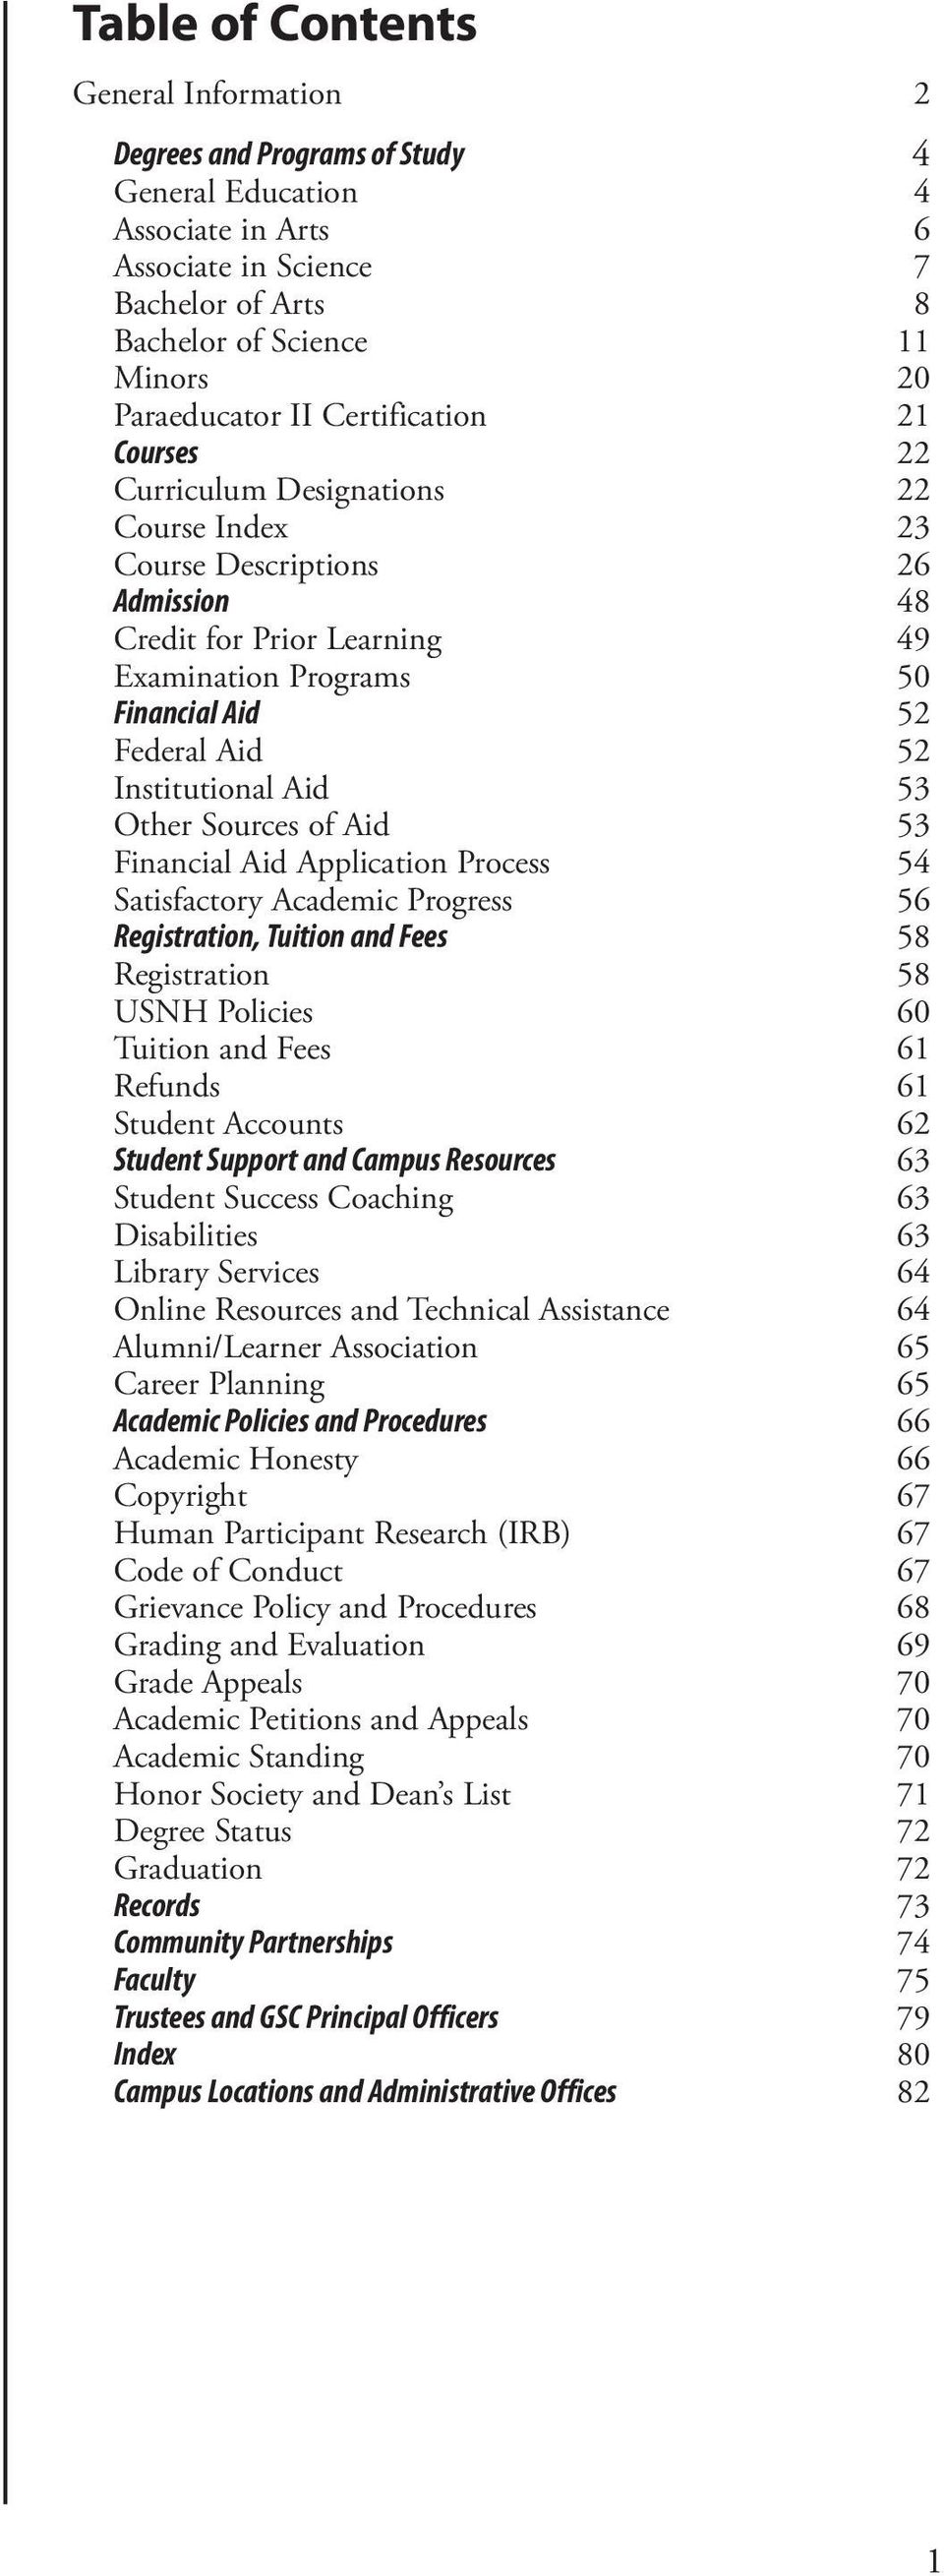 Institutional Aid 53 Other Sources of Aid 53 Financial Aid Application Process 54 Satisfactory Academic Progress 56 Registration, Tuition and Fees 58 Registration 58 USNH Policies 60 Tuition and Fees